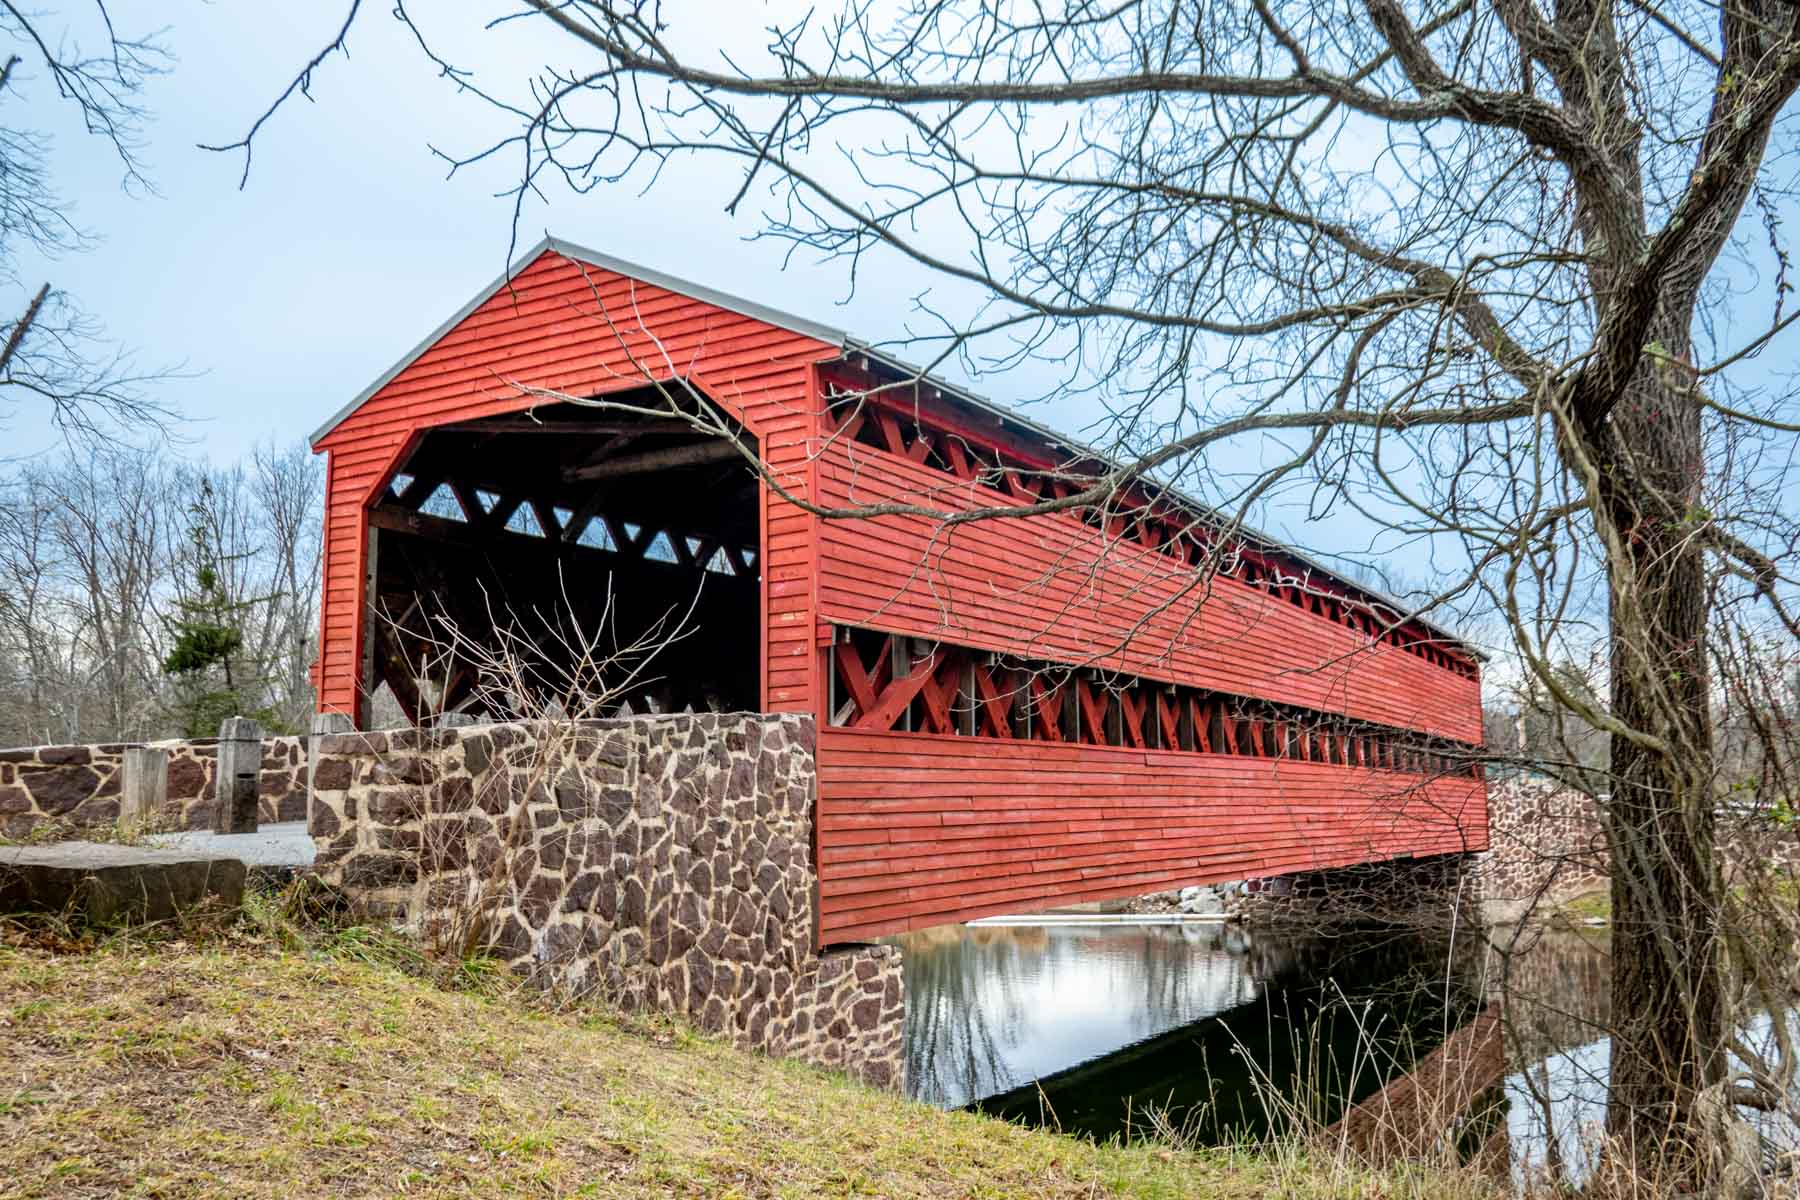 Sachs Covered Bridge, a red covered bridge over a creek in Gettysburg PA